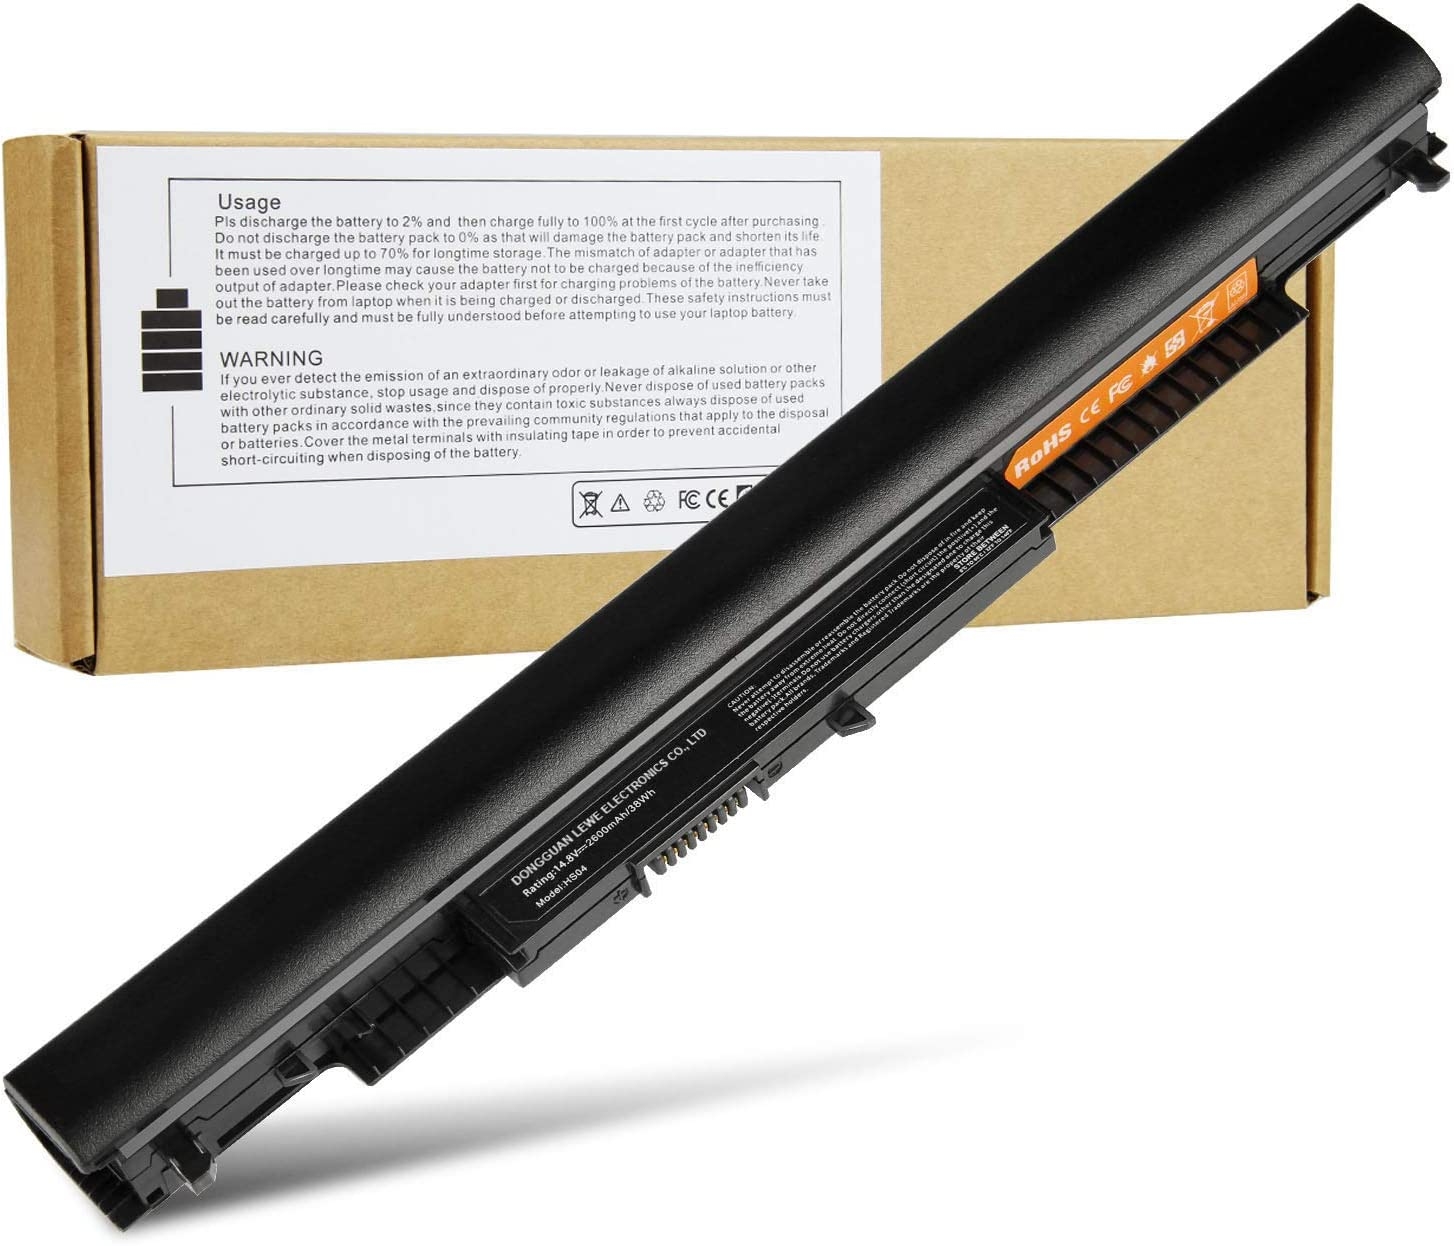 HS04 HS03 Laptop Battery for HP Spare 807956-001 807957-001 807612-421 807611-221 240 G4 15-AY039WM 15-BA079DX TPN-C126 TPN-I119 HSTNN-LB6U HSTNN-DB7I HSTNN-LB6V